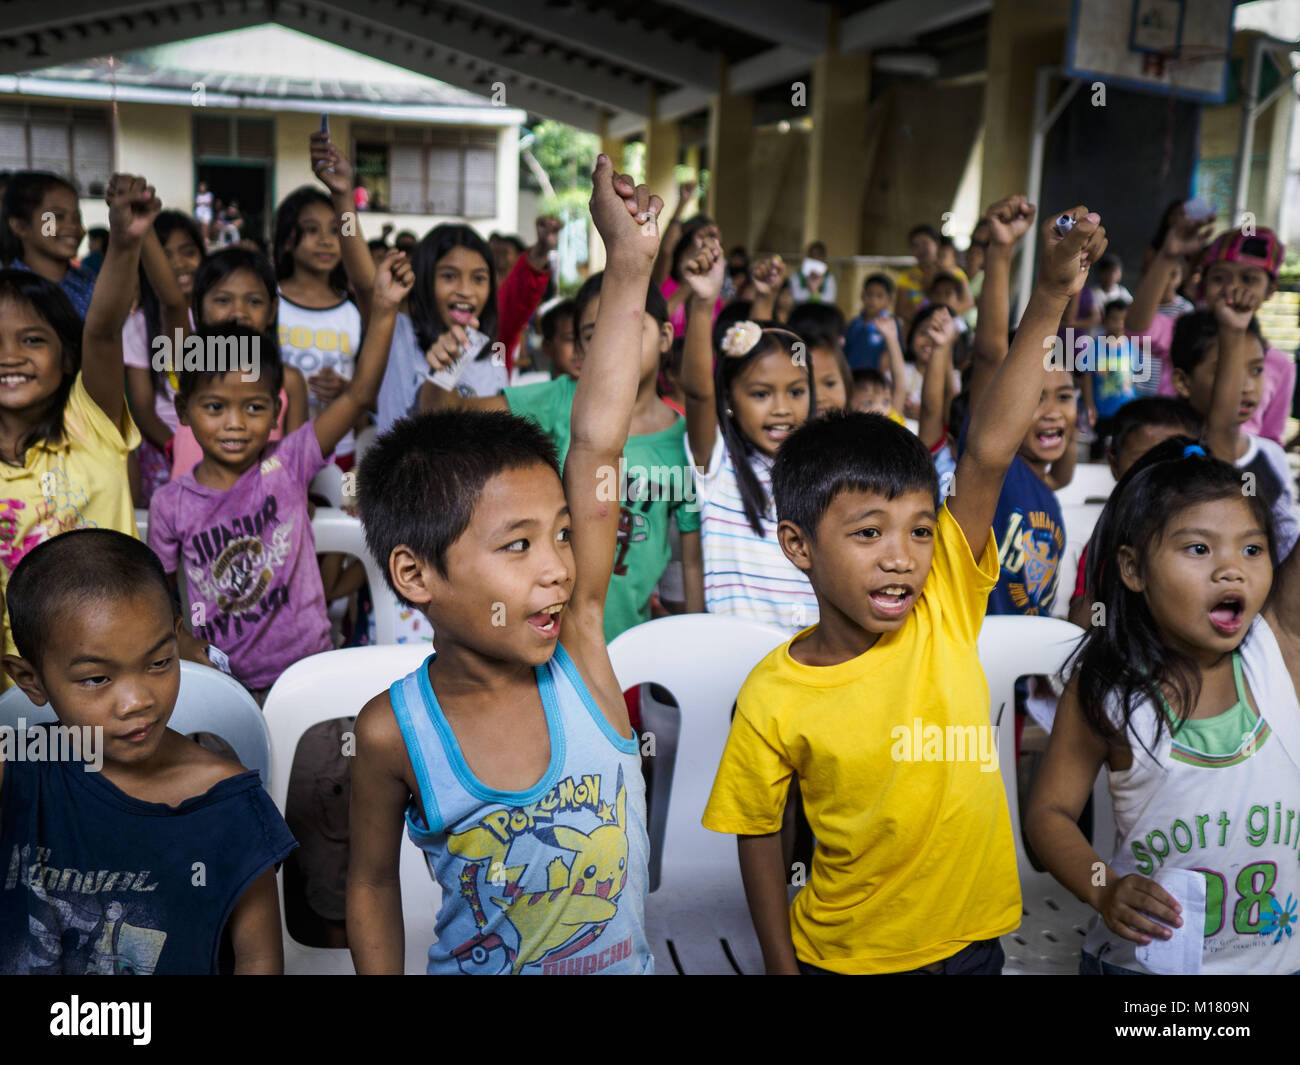 Legazpi, Albay, Philippines. 28th Jan, 2018. Children participate in an activity organized by Jollibee, a Filipino - Stock Image